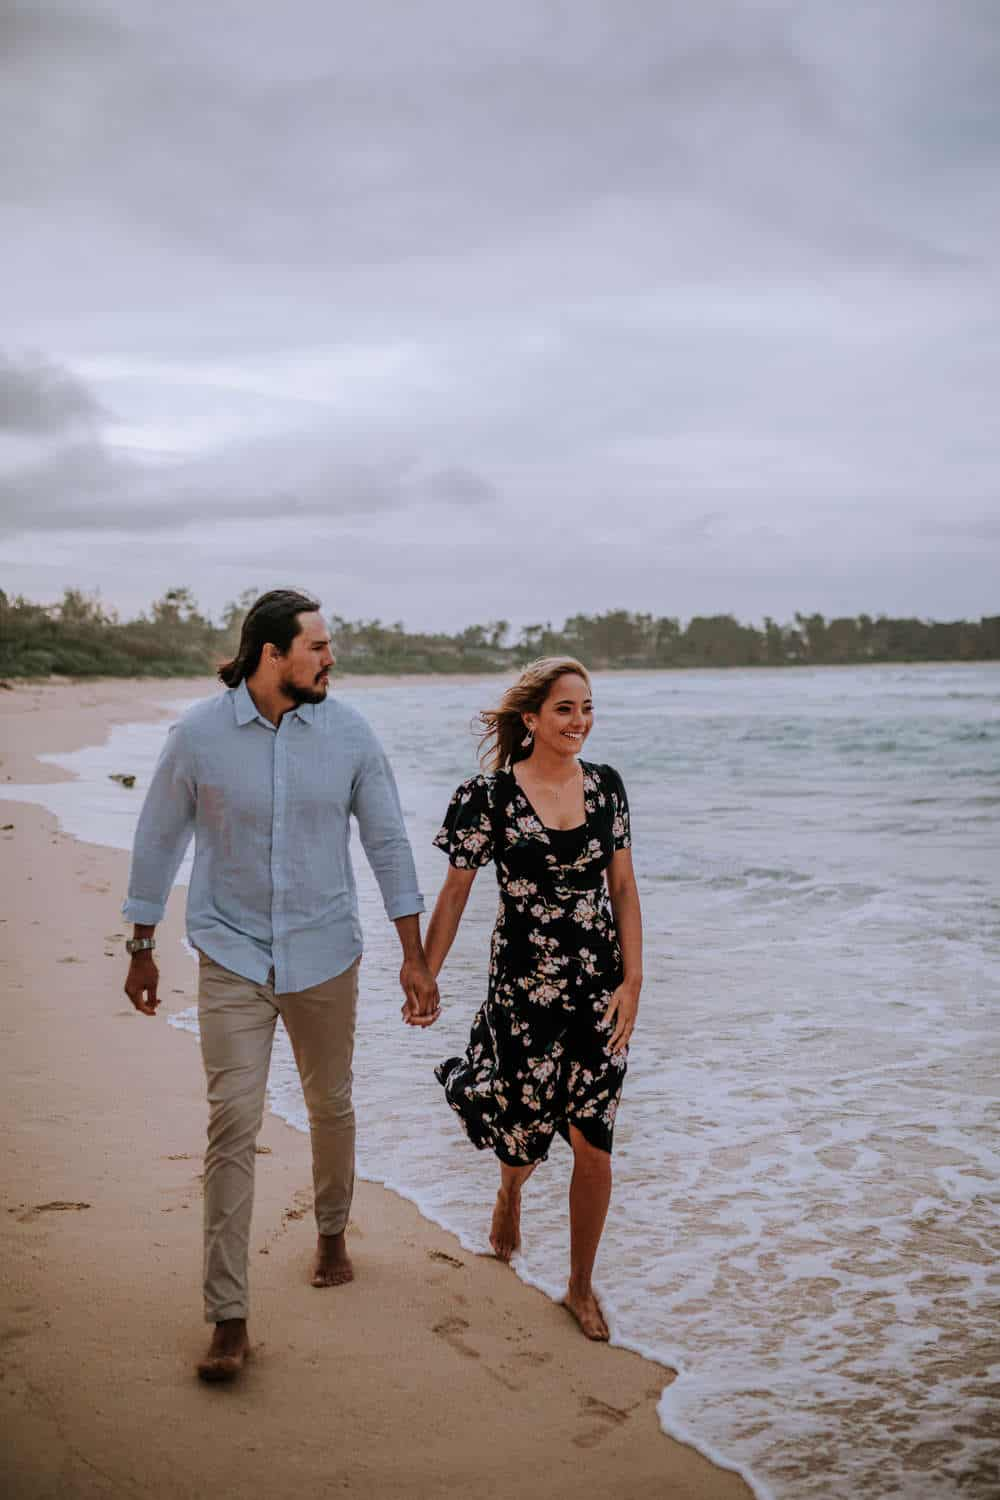 North Shore Oahu Hawaii engagement session with Anela Benavides photography